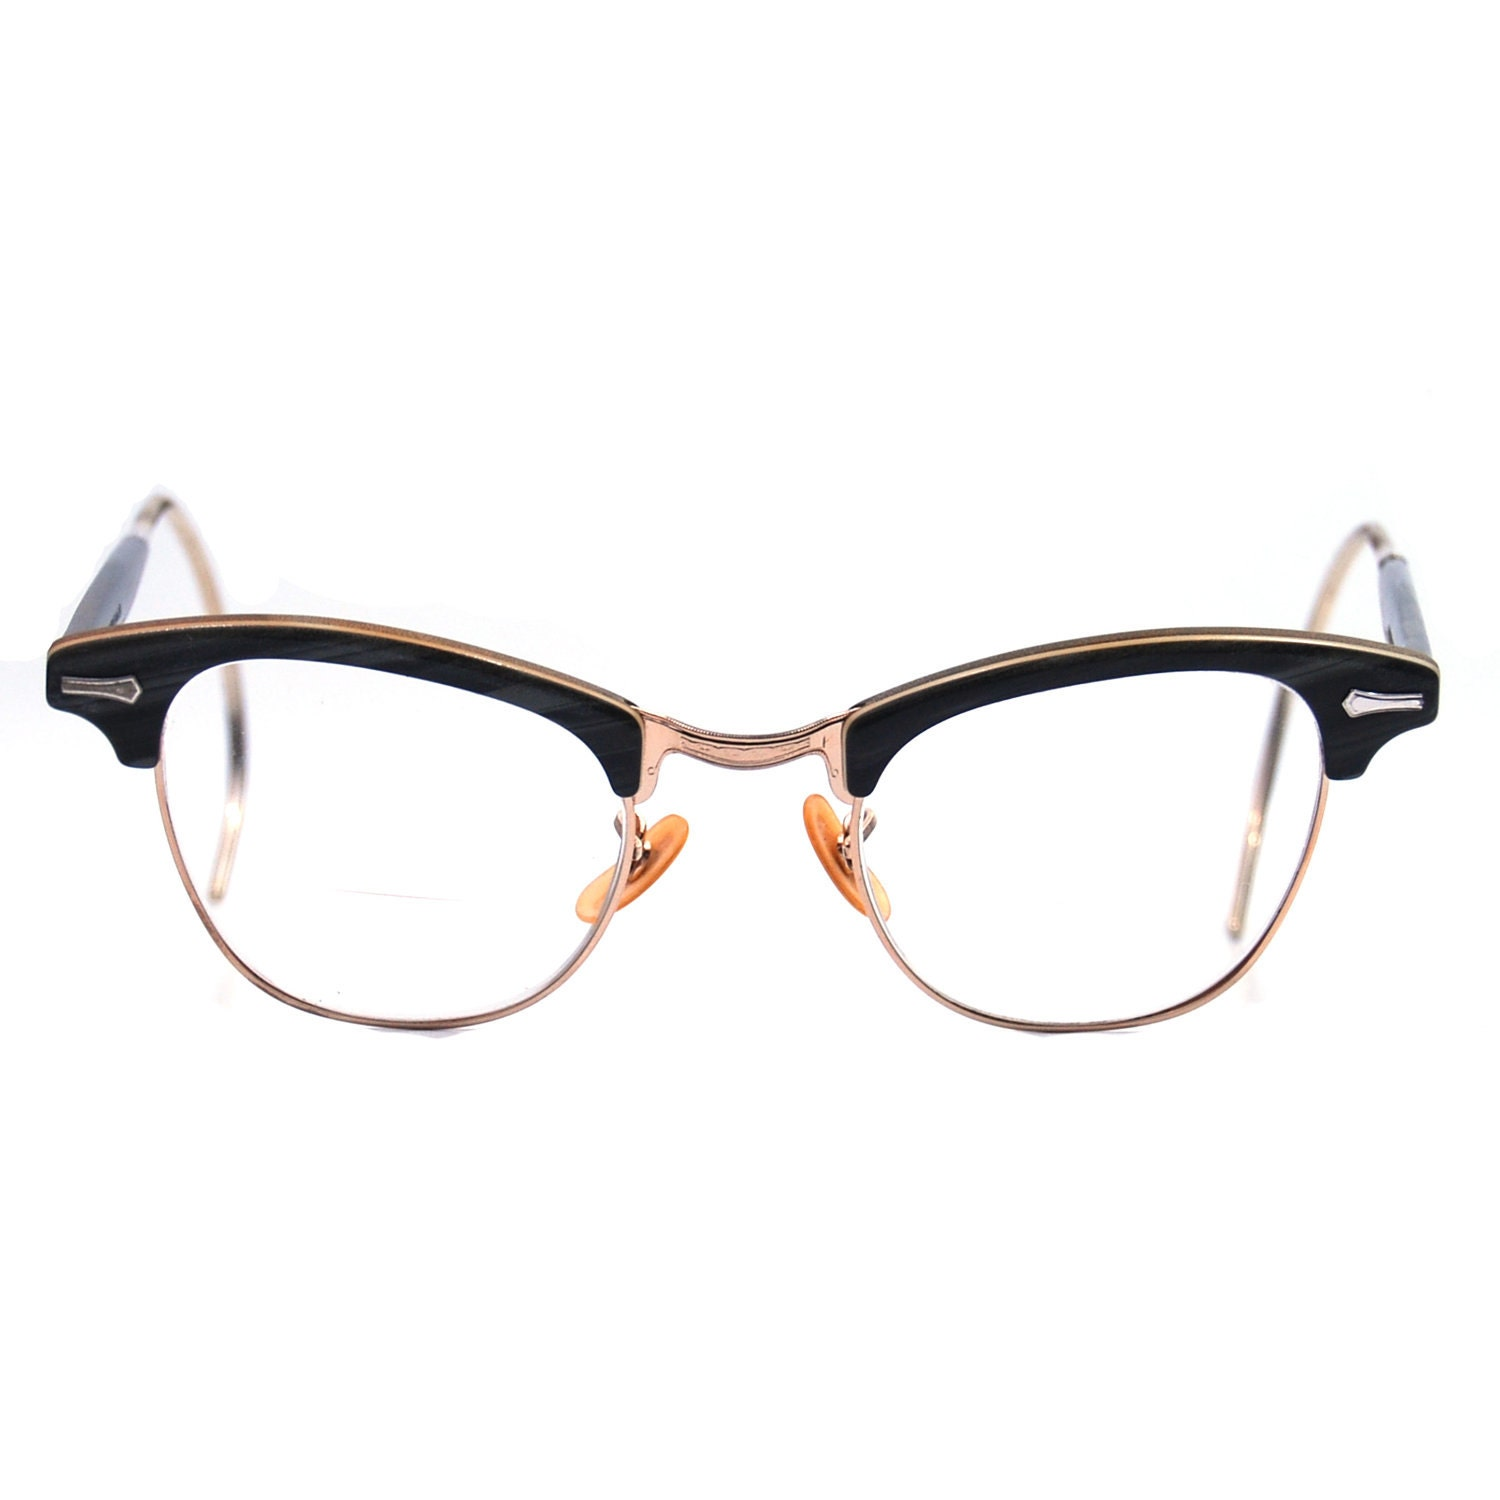 vintage eyeglasses gold filled shuron gray and black by